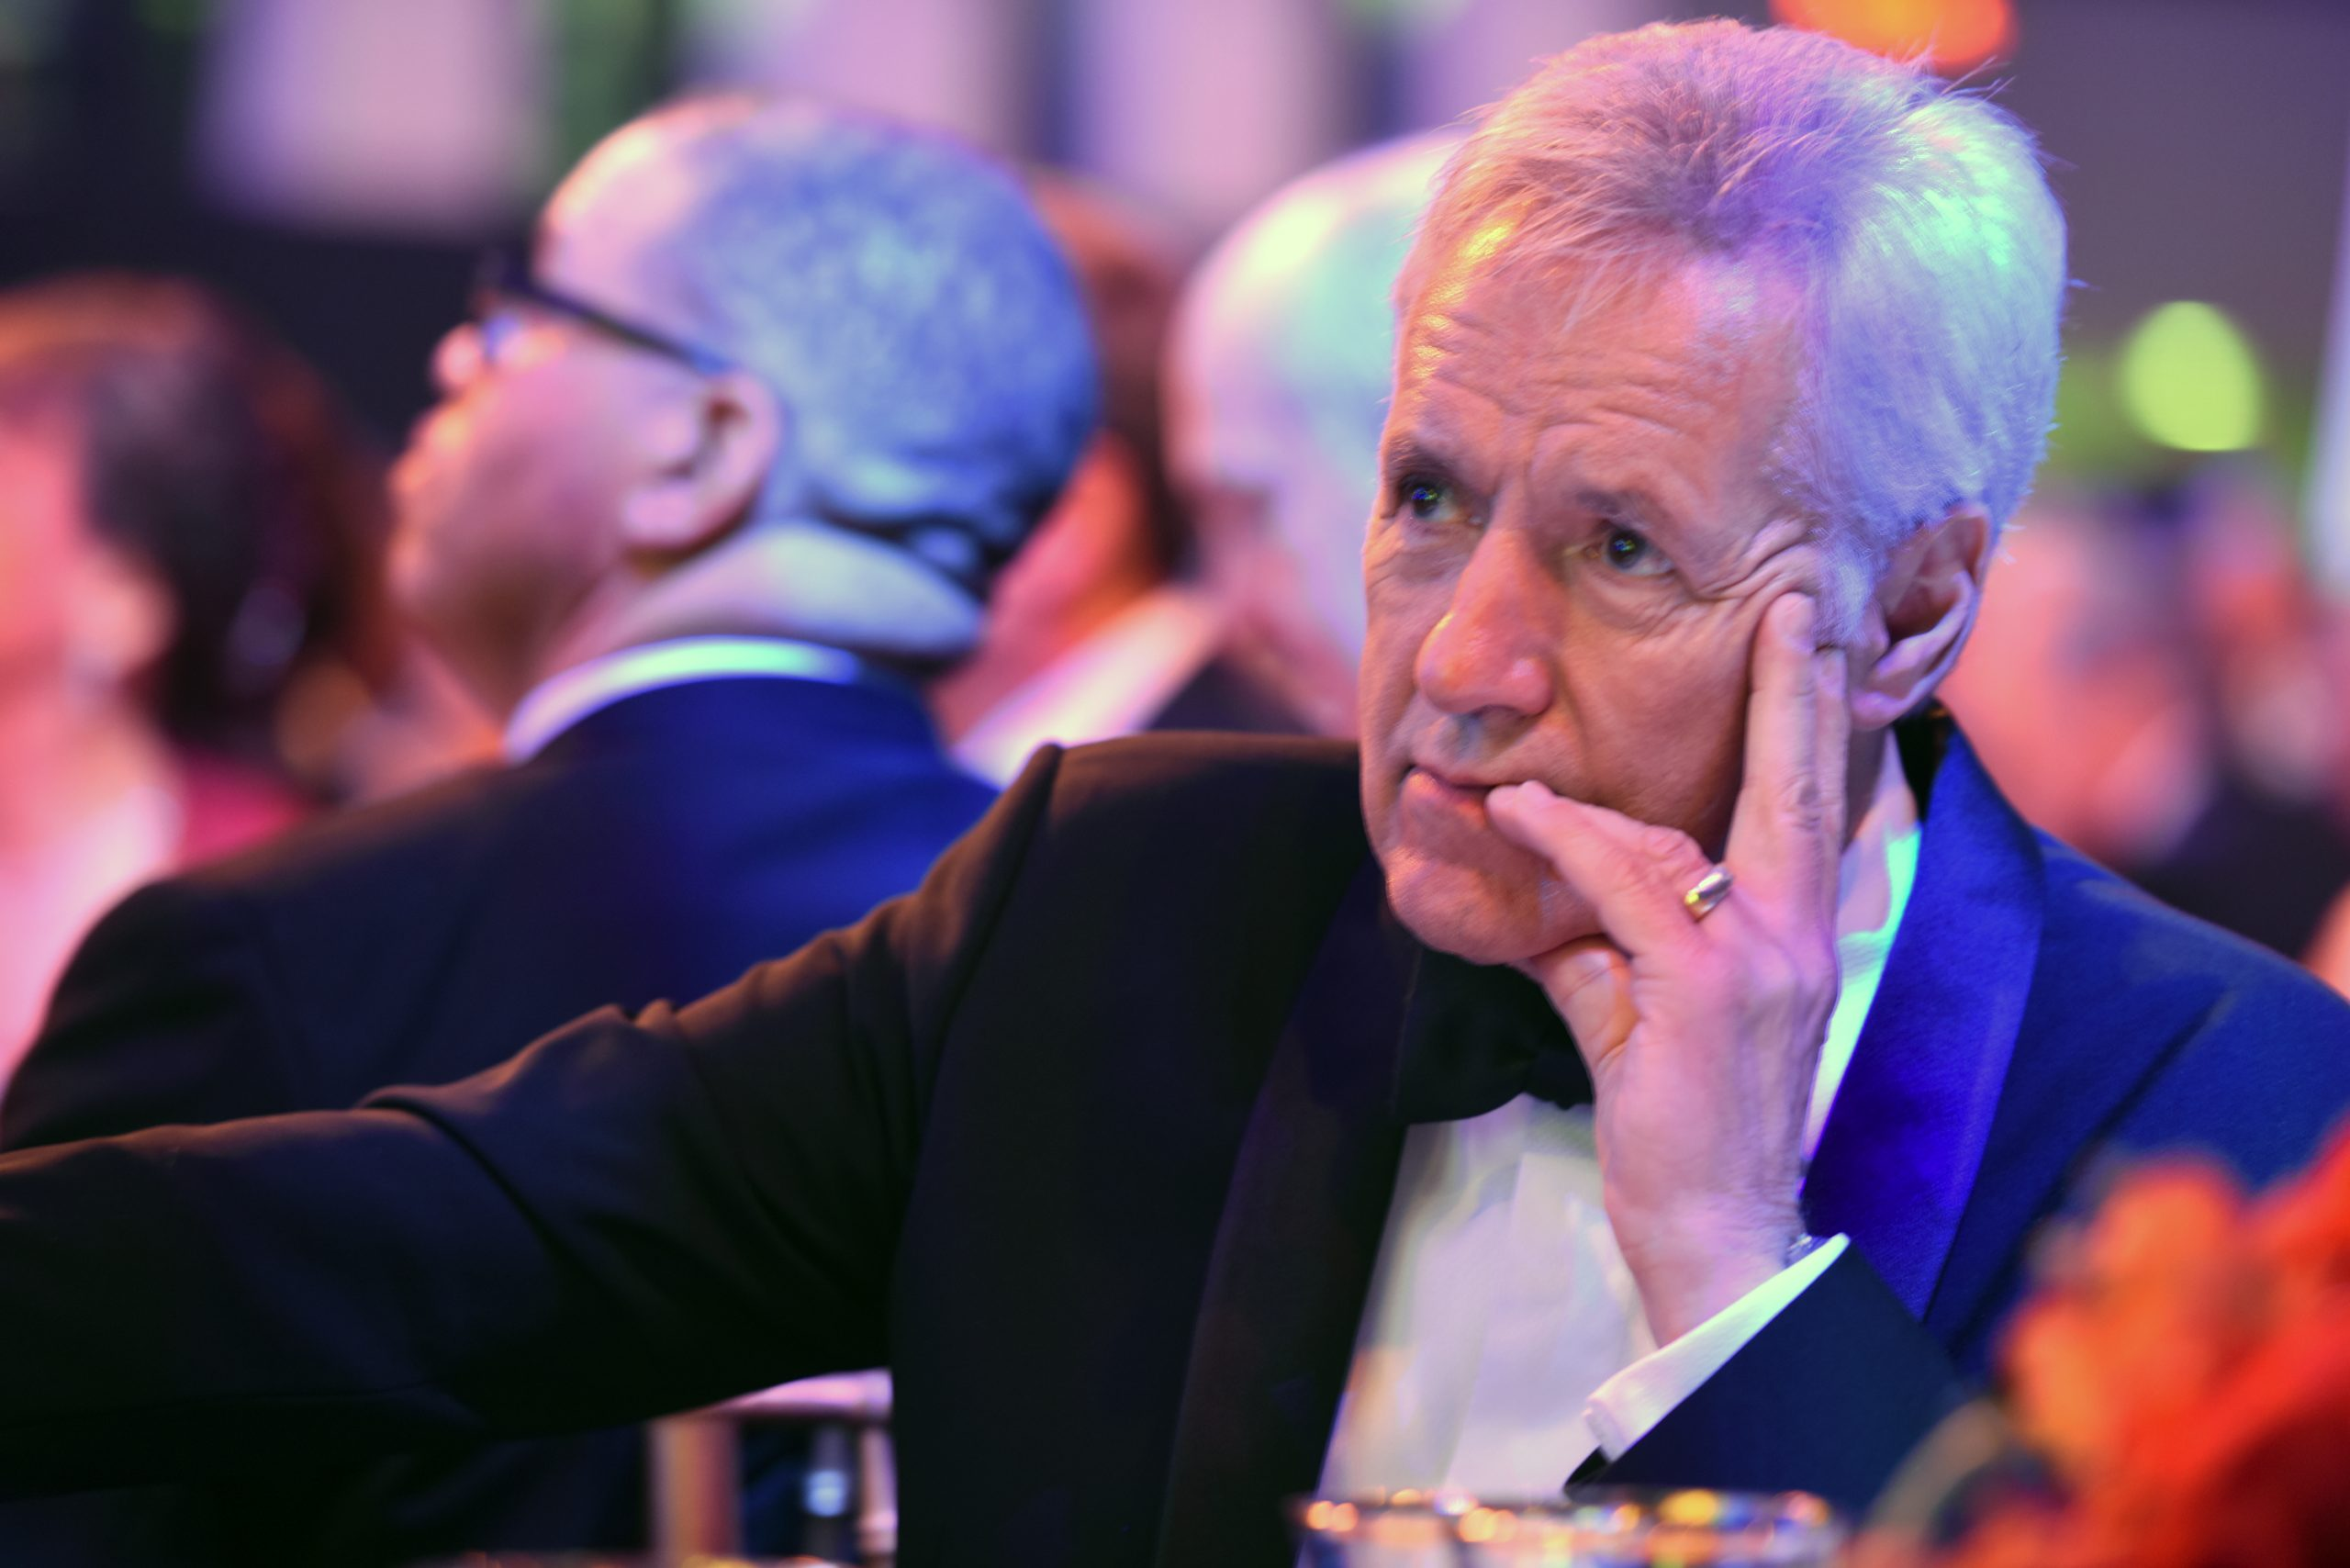 Alex Trebek's passing inspired Google to create a special easter egg in his honor